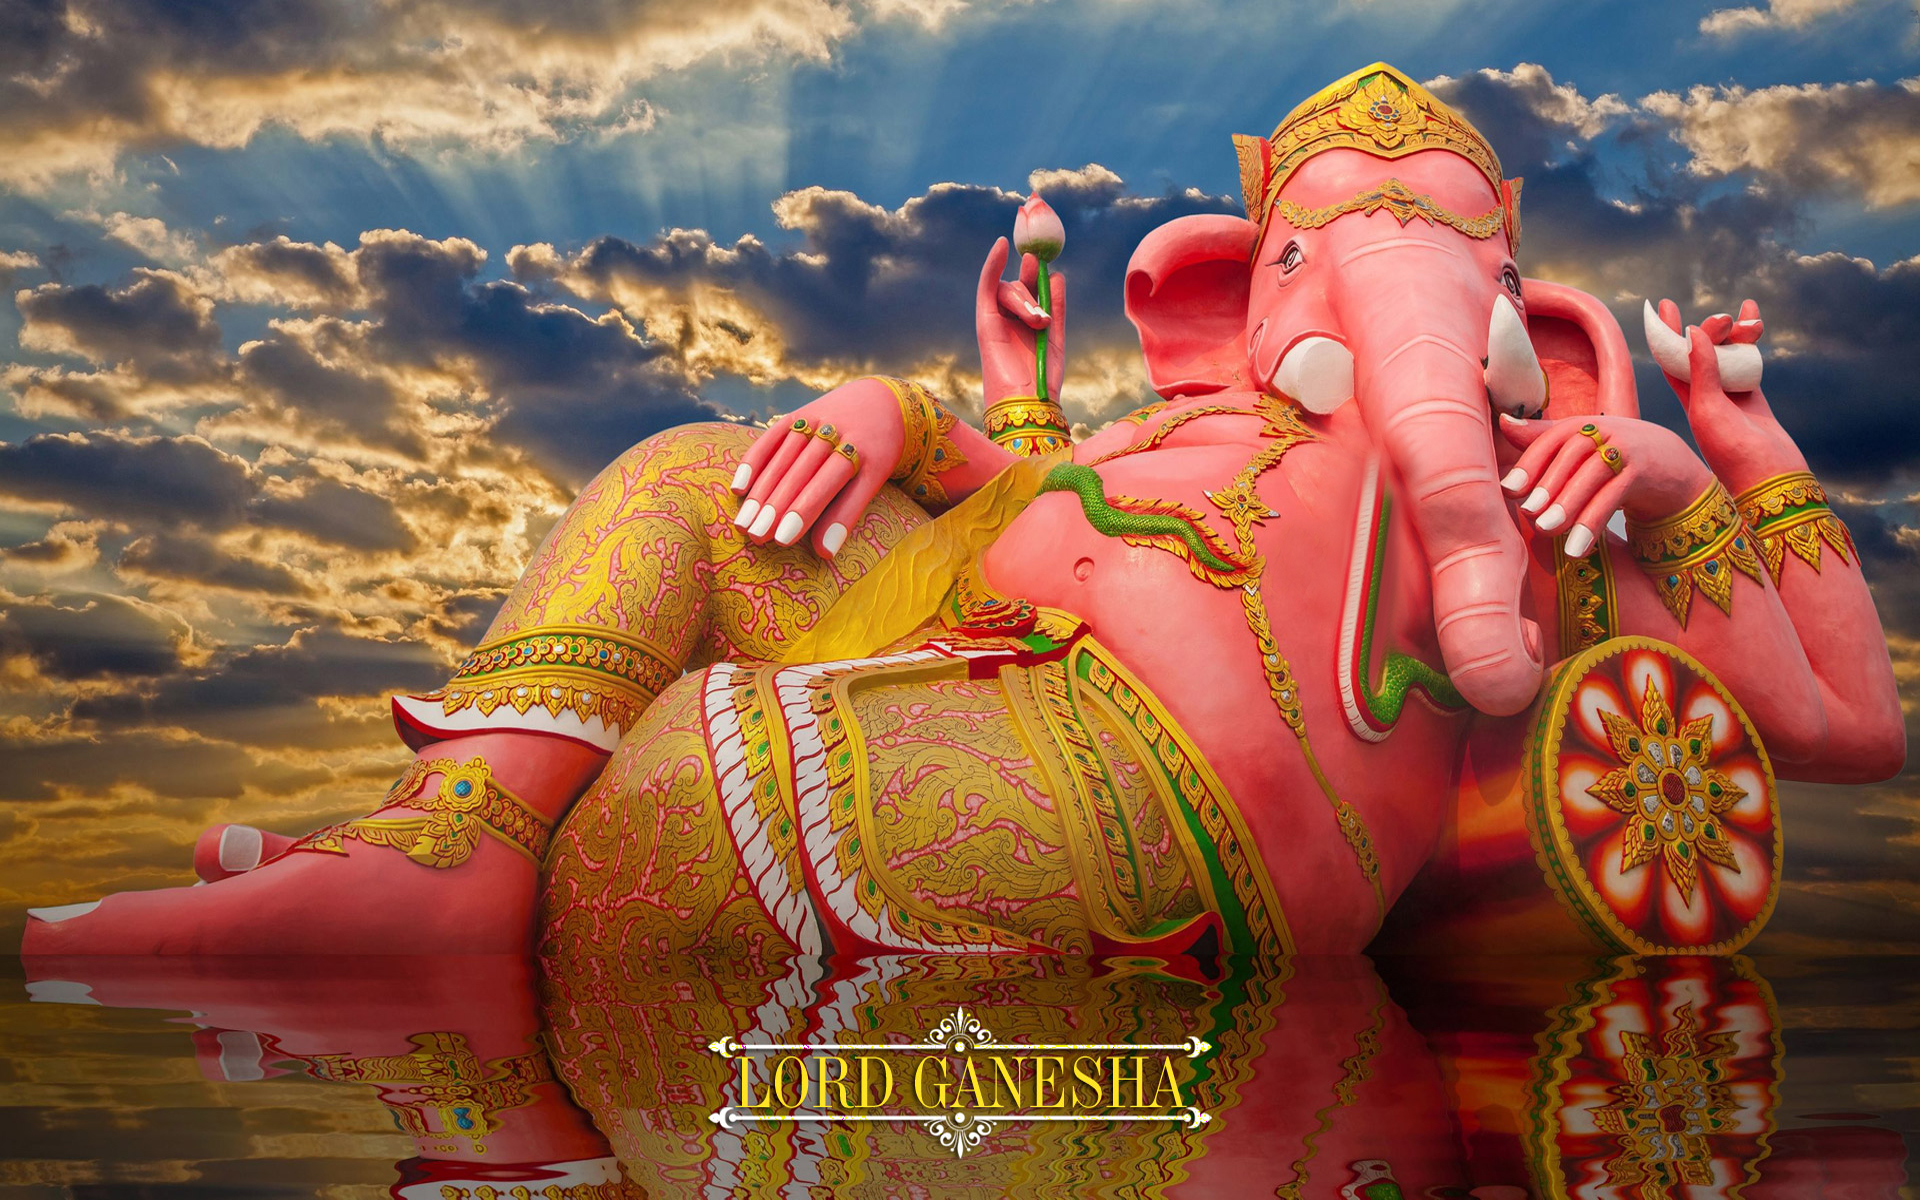 Hd wallpaper ganesh - Here We Are Sharing The Vast Collection Of The Lord Ganesha Wallpaper Images Hd Wallpaper Pictures For Android Mobile Facebook Whatsapp Dp Lord Ganesha